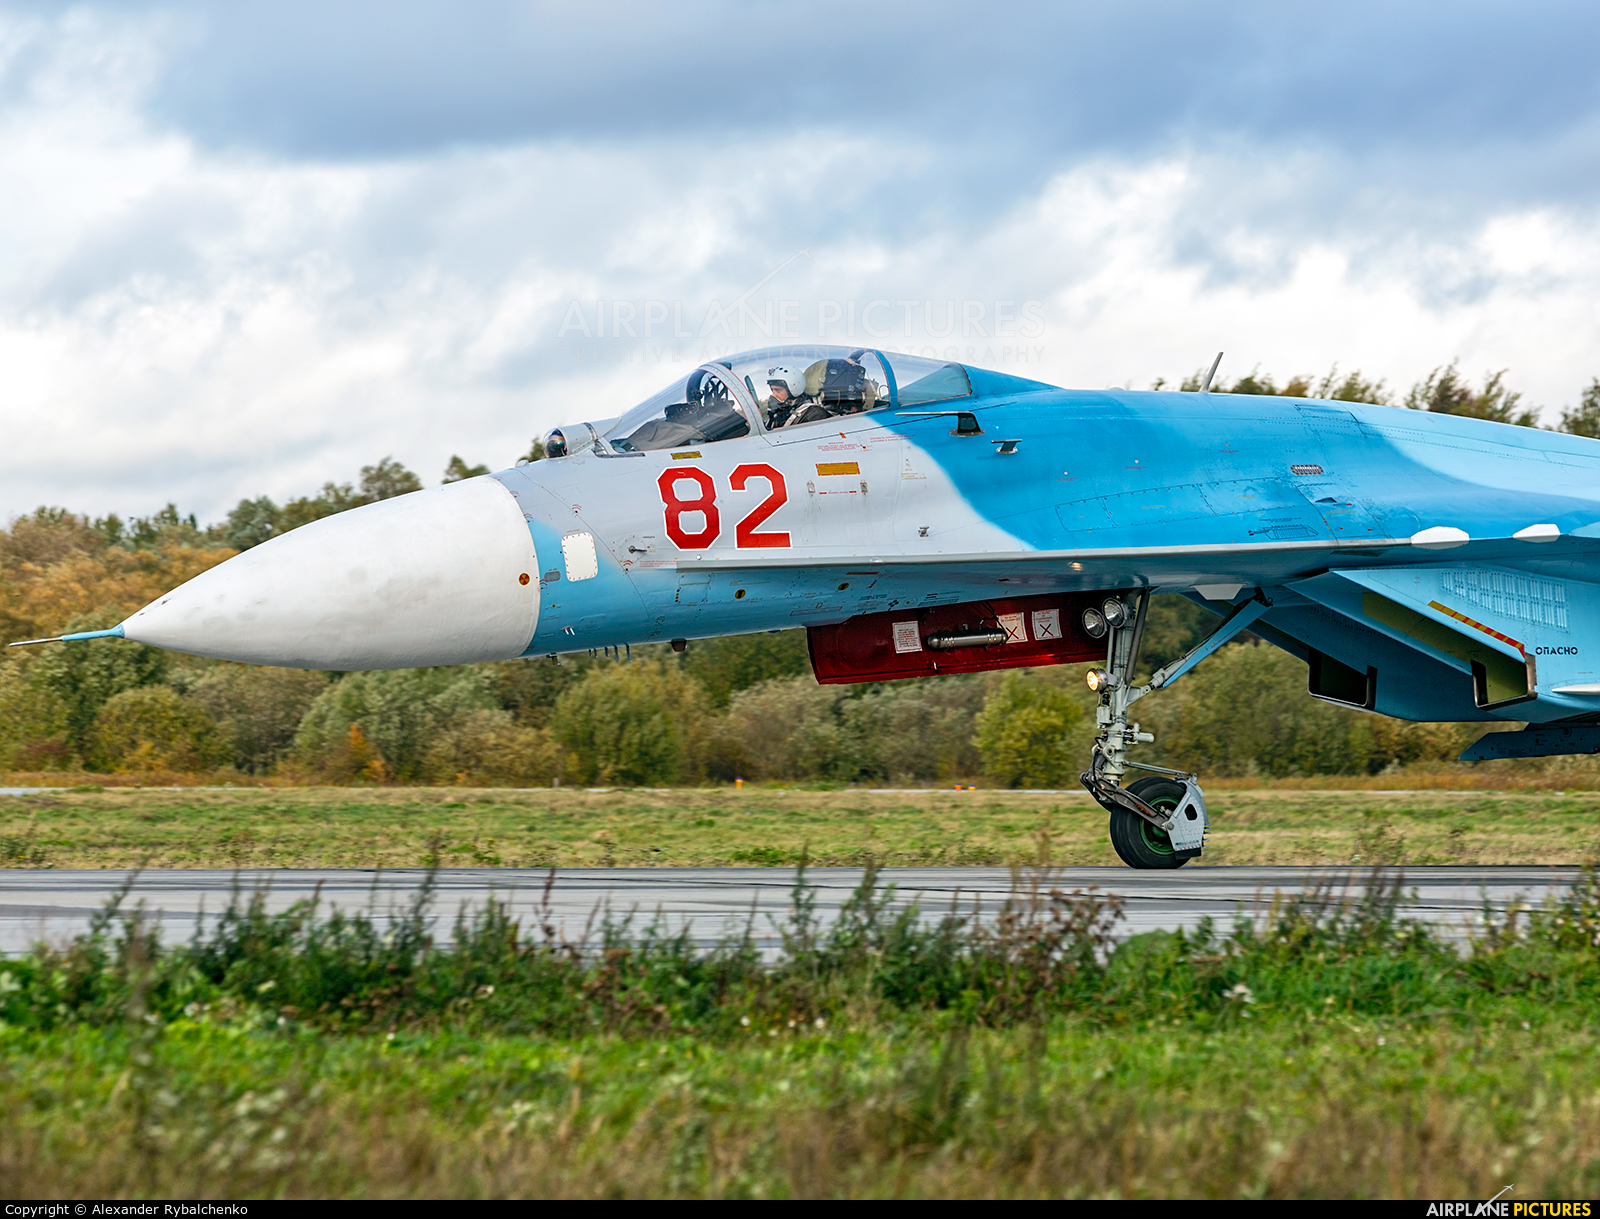 Russia - Navy RF-91907 aircraft at Undisclosed Location